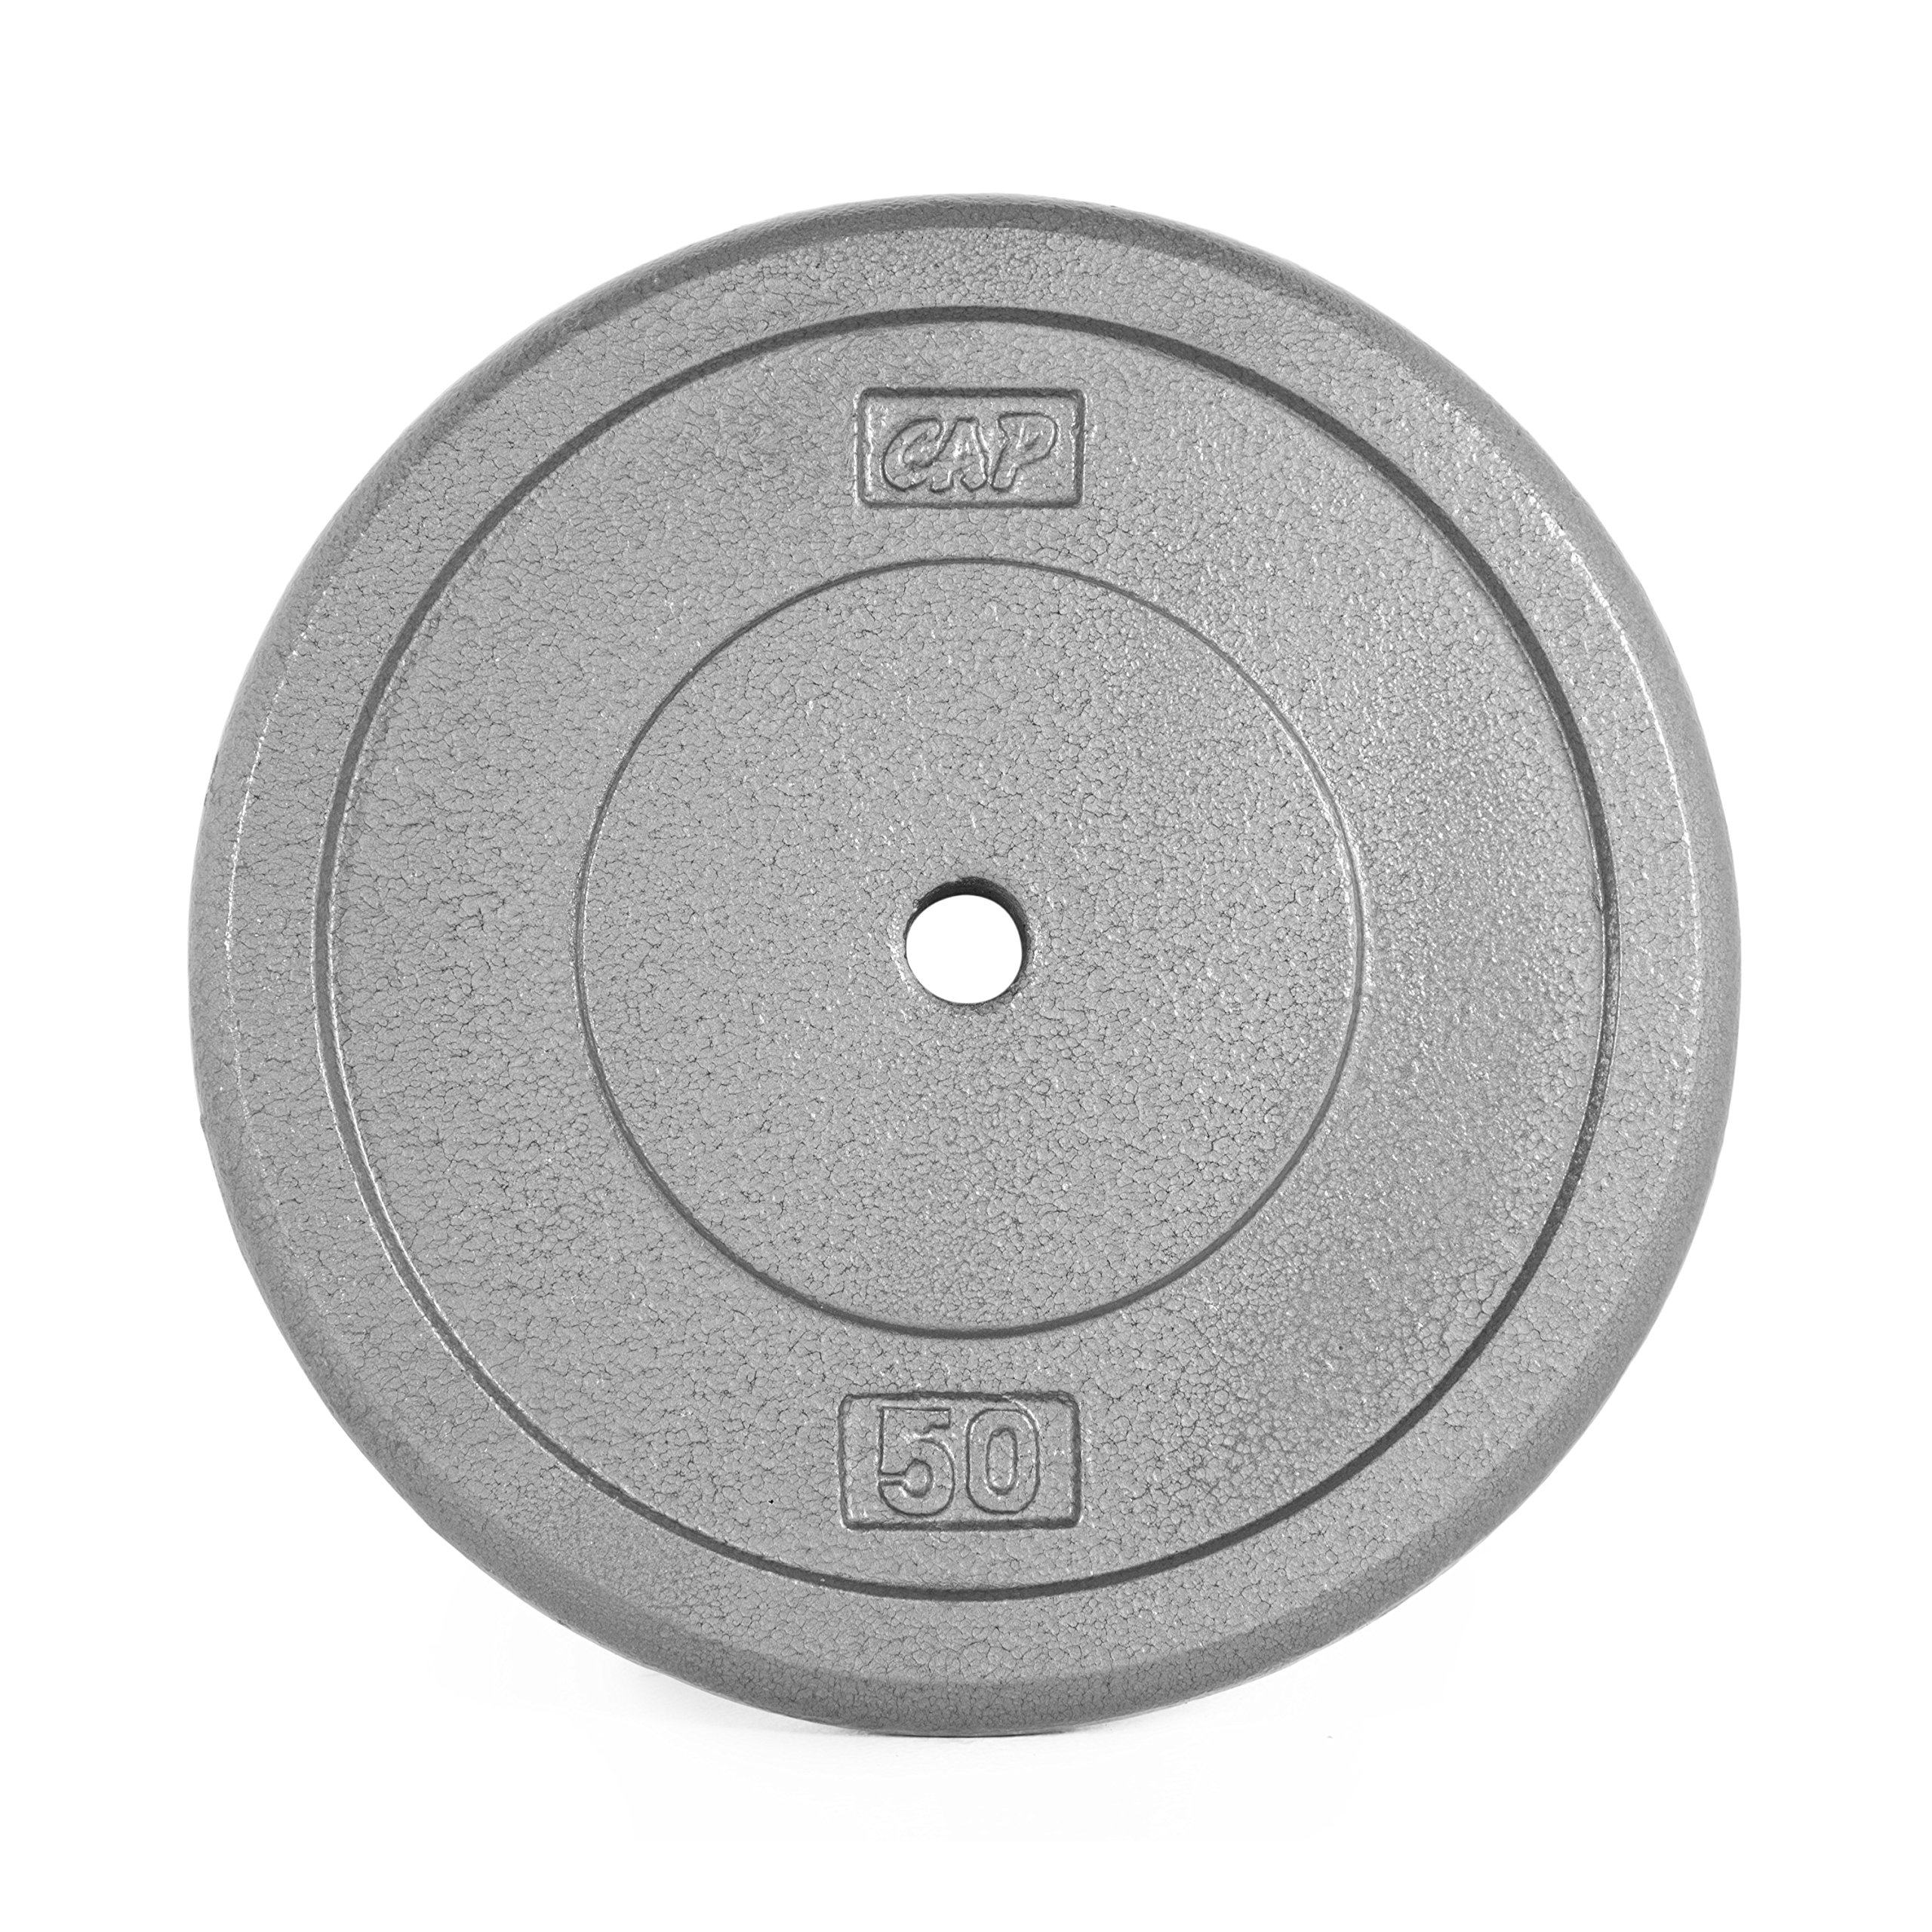 CAP Barbell Cast Iron Standard 1-Inch Weight Plates, Gray, Single, 50 Pound